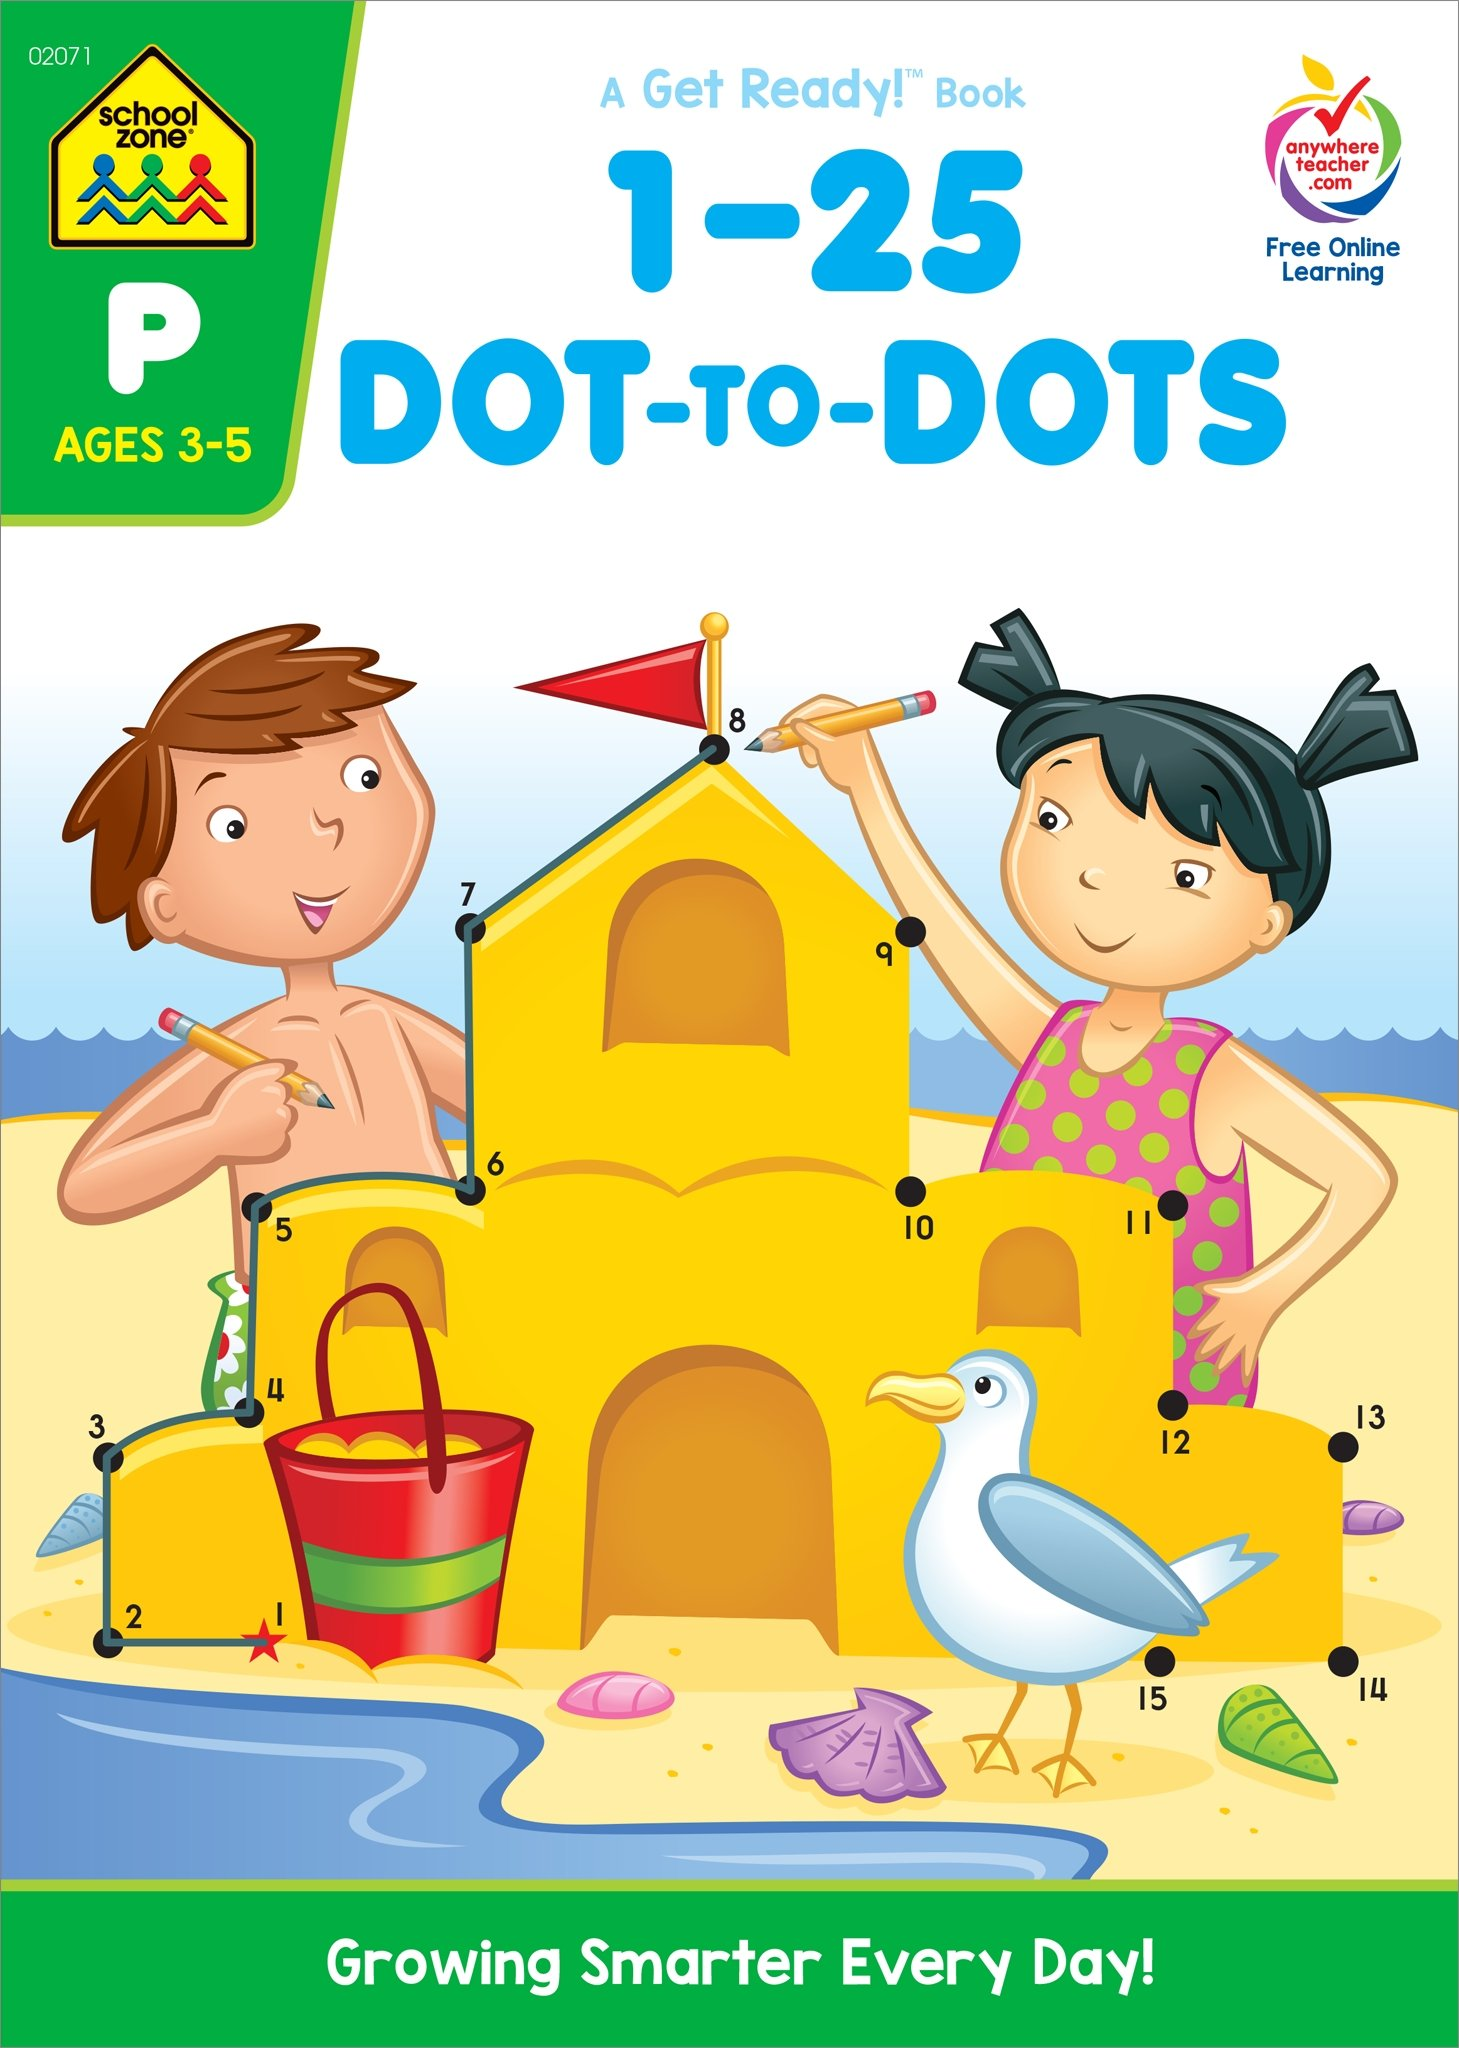 1-25 Dot-to-Dots (A Get Ready Book, Ages 3-5)